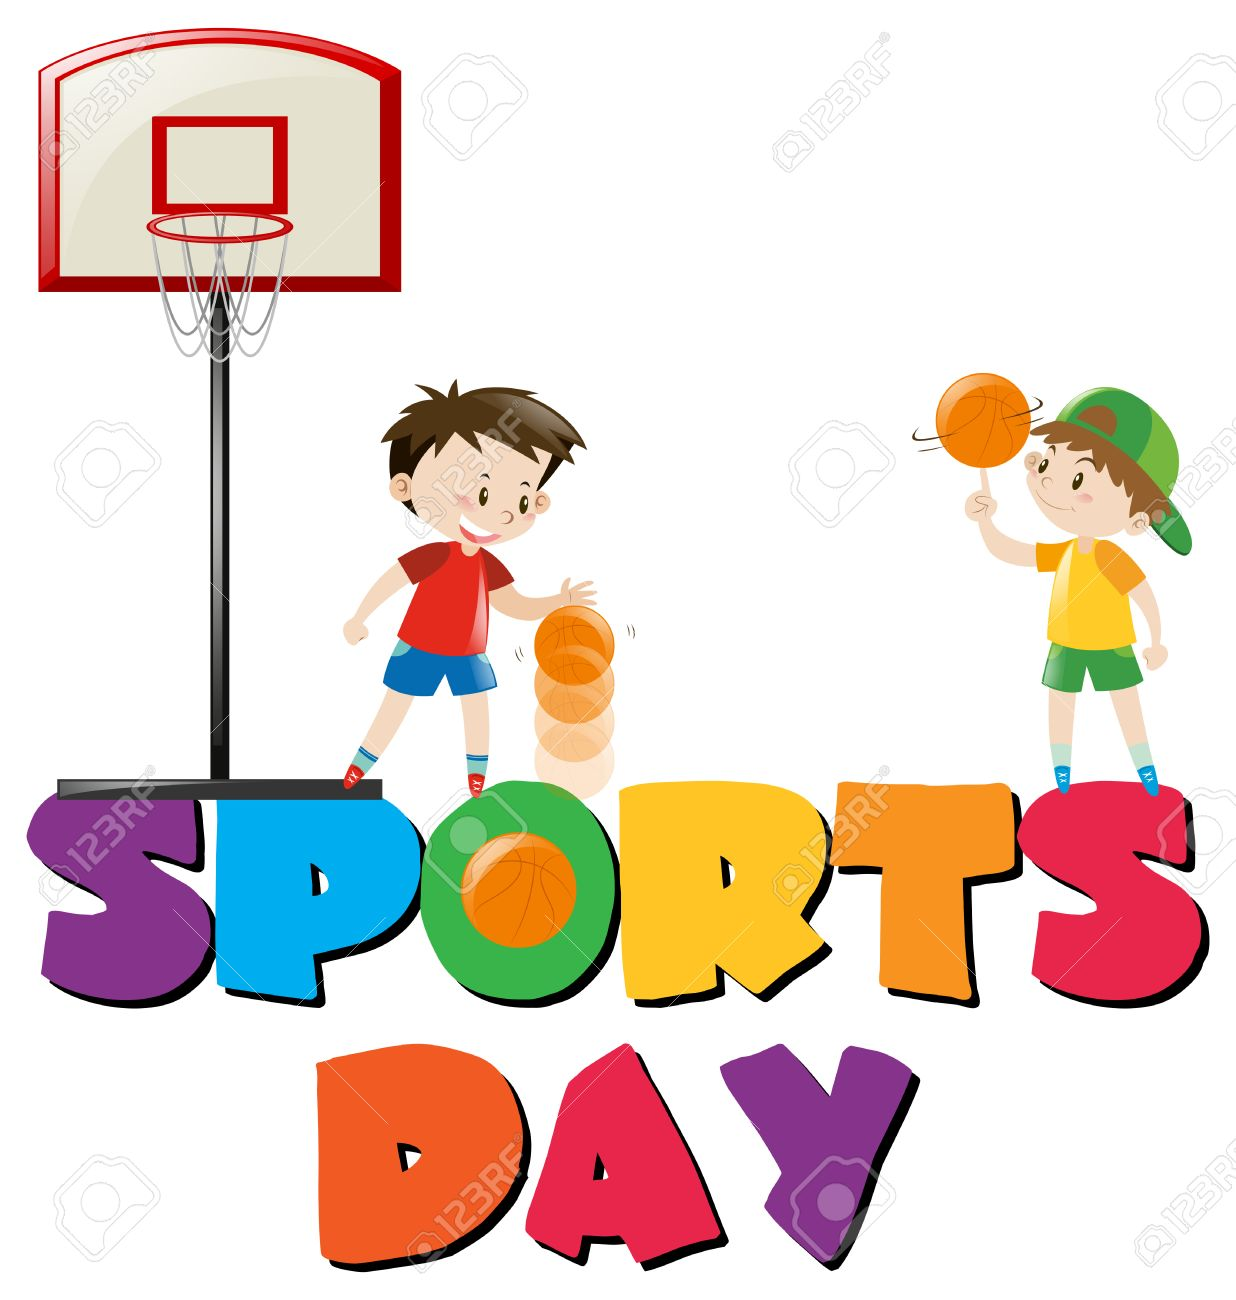 1236x1300 Sports Day Poster With Boys Playing Basketball Illustration